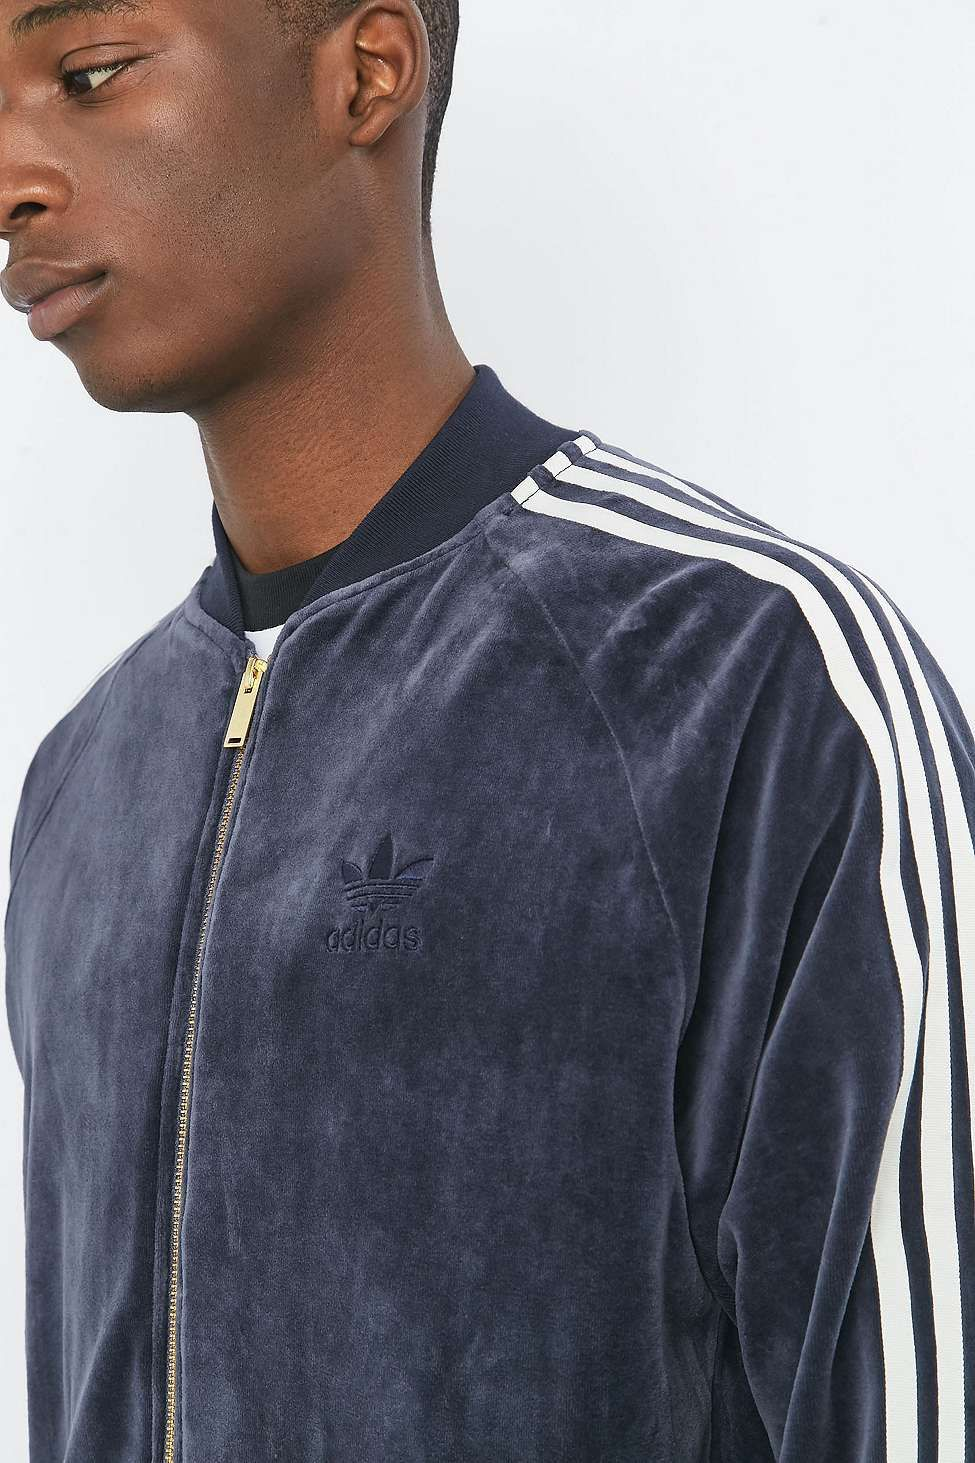 Adidas superstar jacke velour